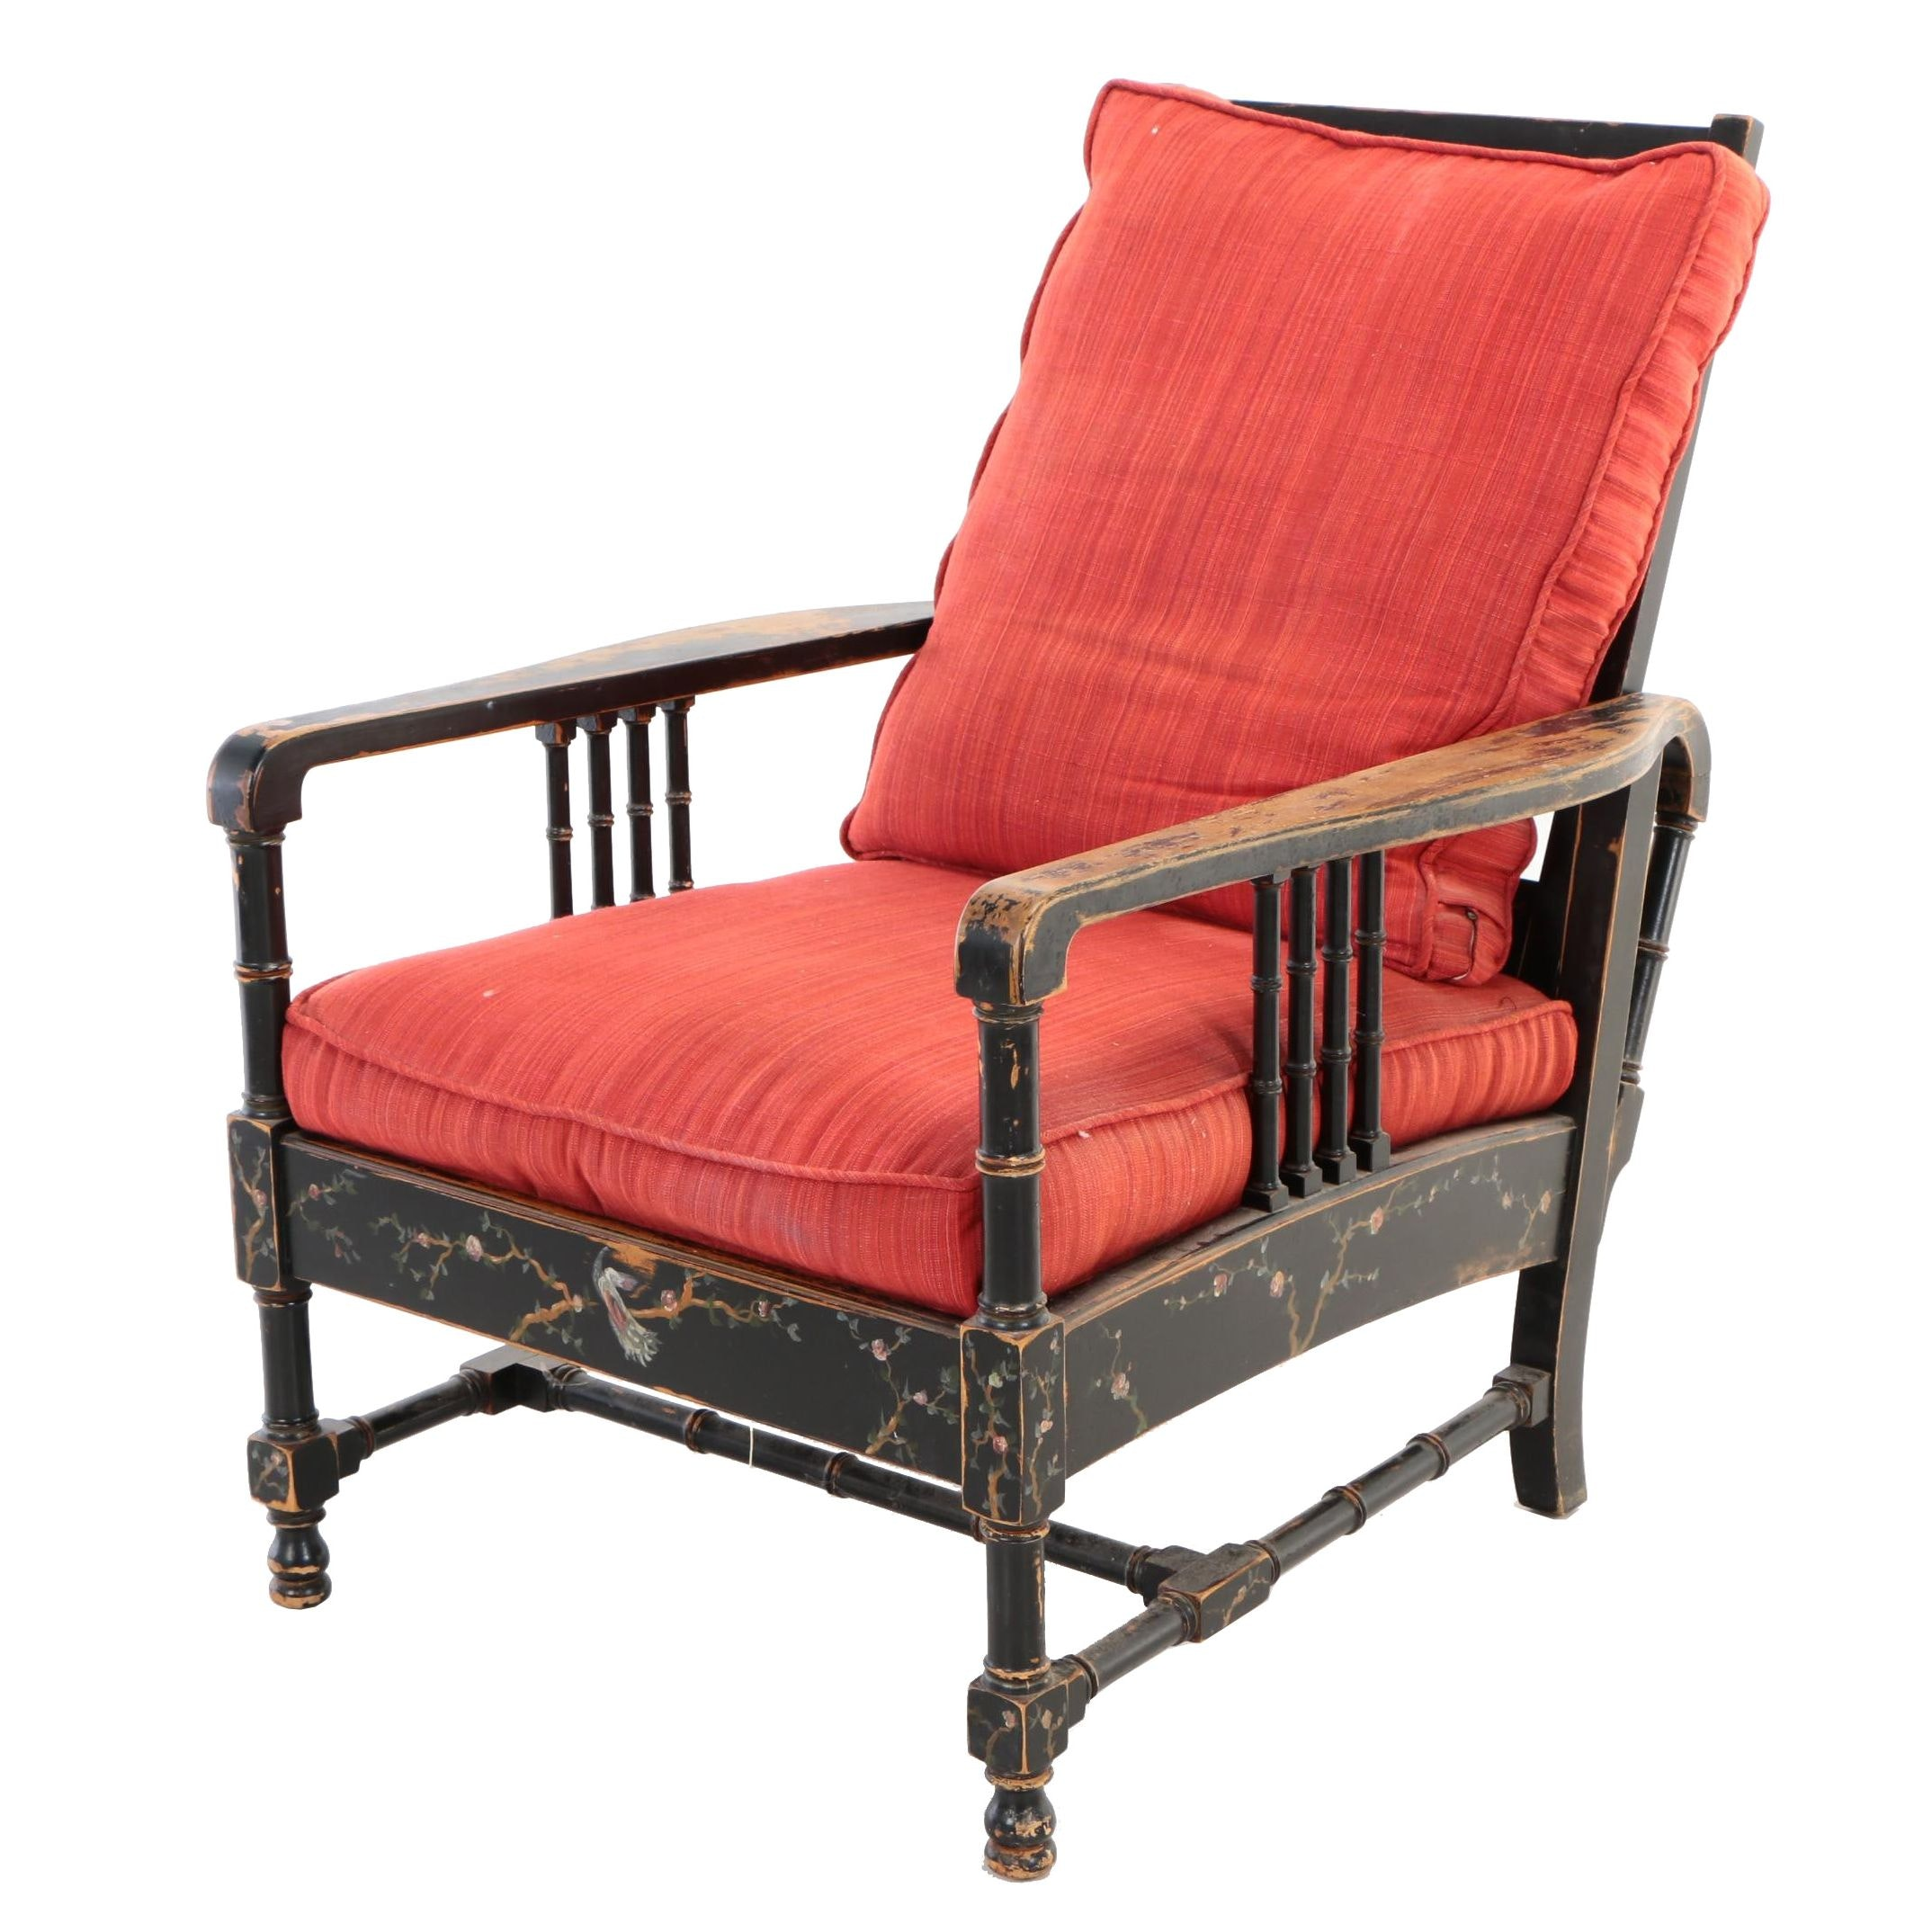 Black-Japanned and Polychrome-Decorated Faux-Bamboo Morris Chair